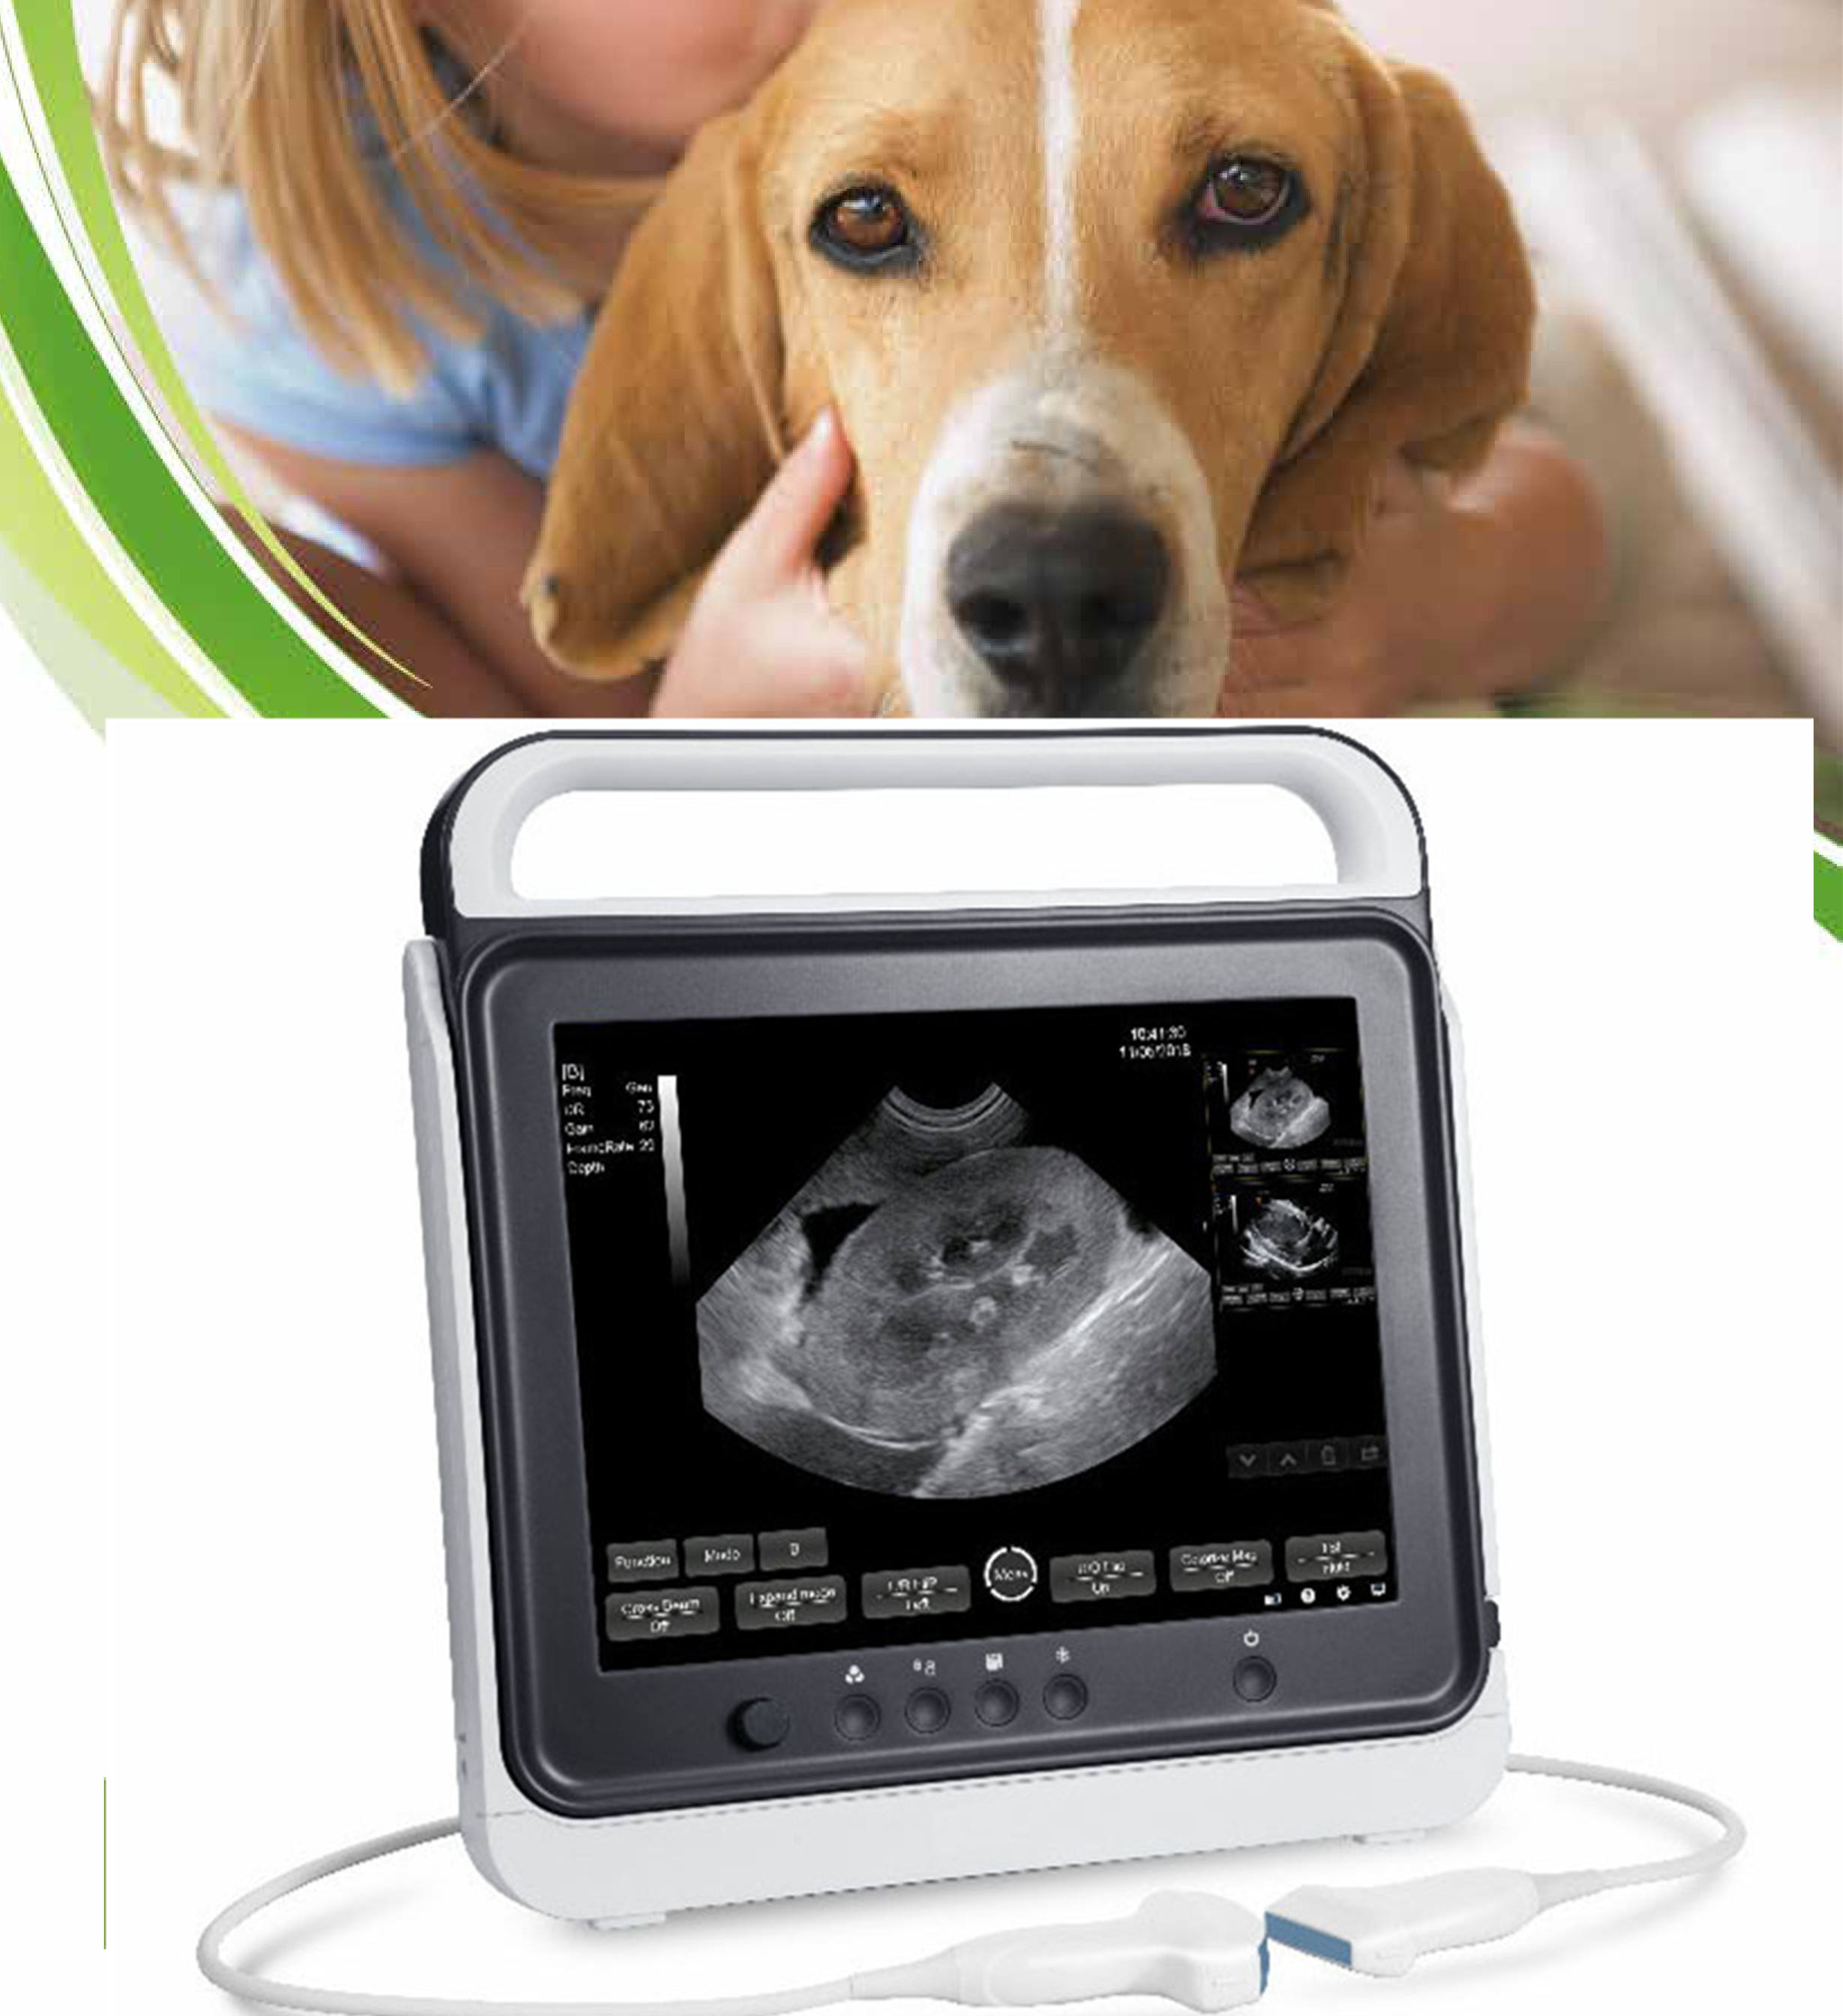 Veterinary ultrasound machine / portable handheld ultrasound scanner for animal